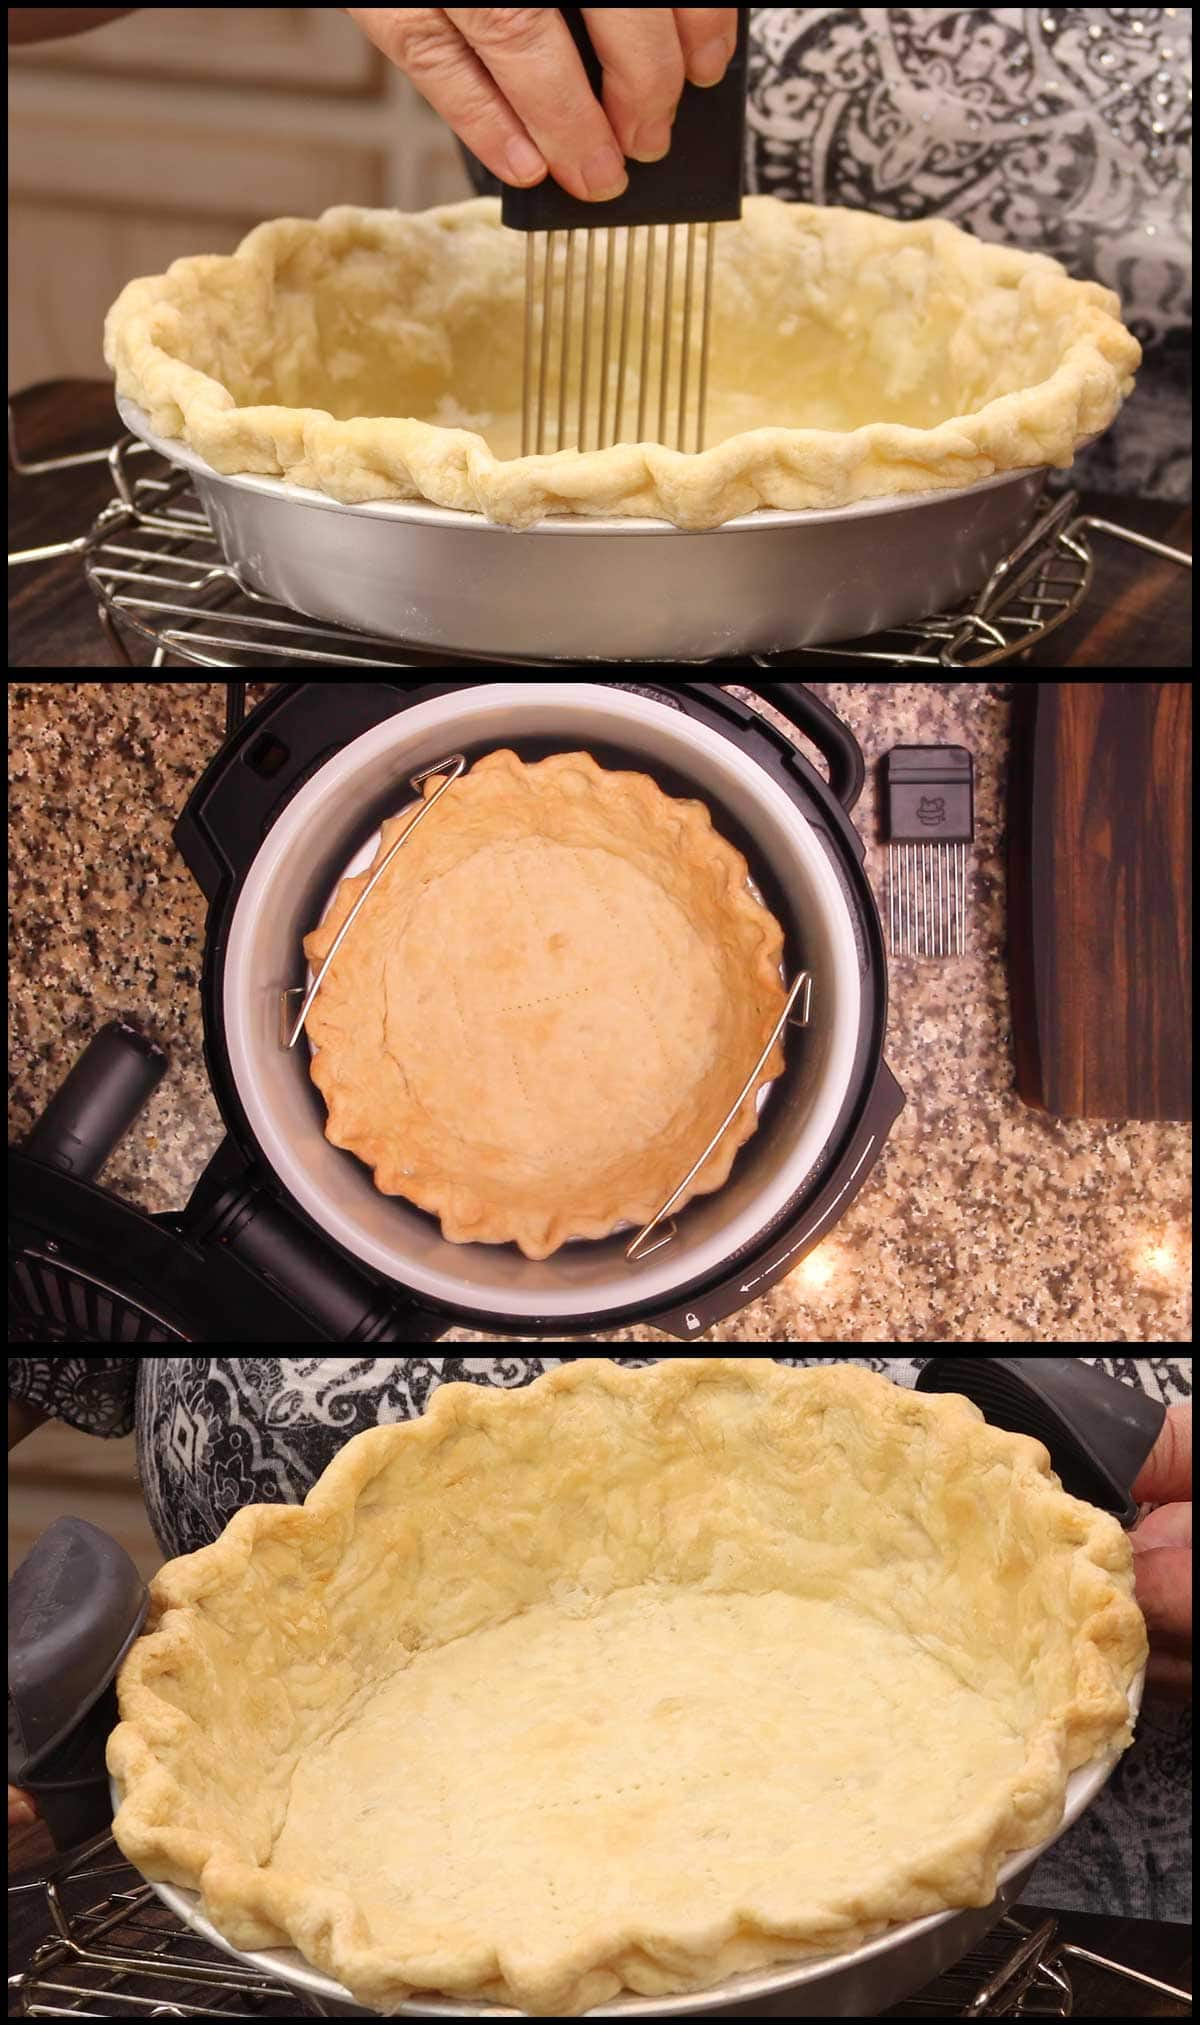 poking holes in crust and finishing baking the pie crust